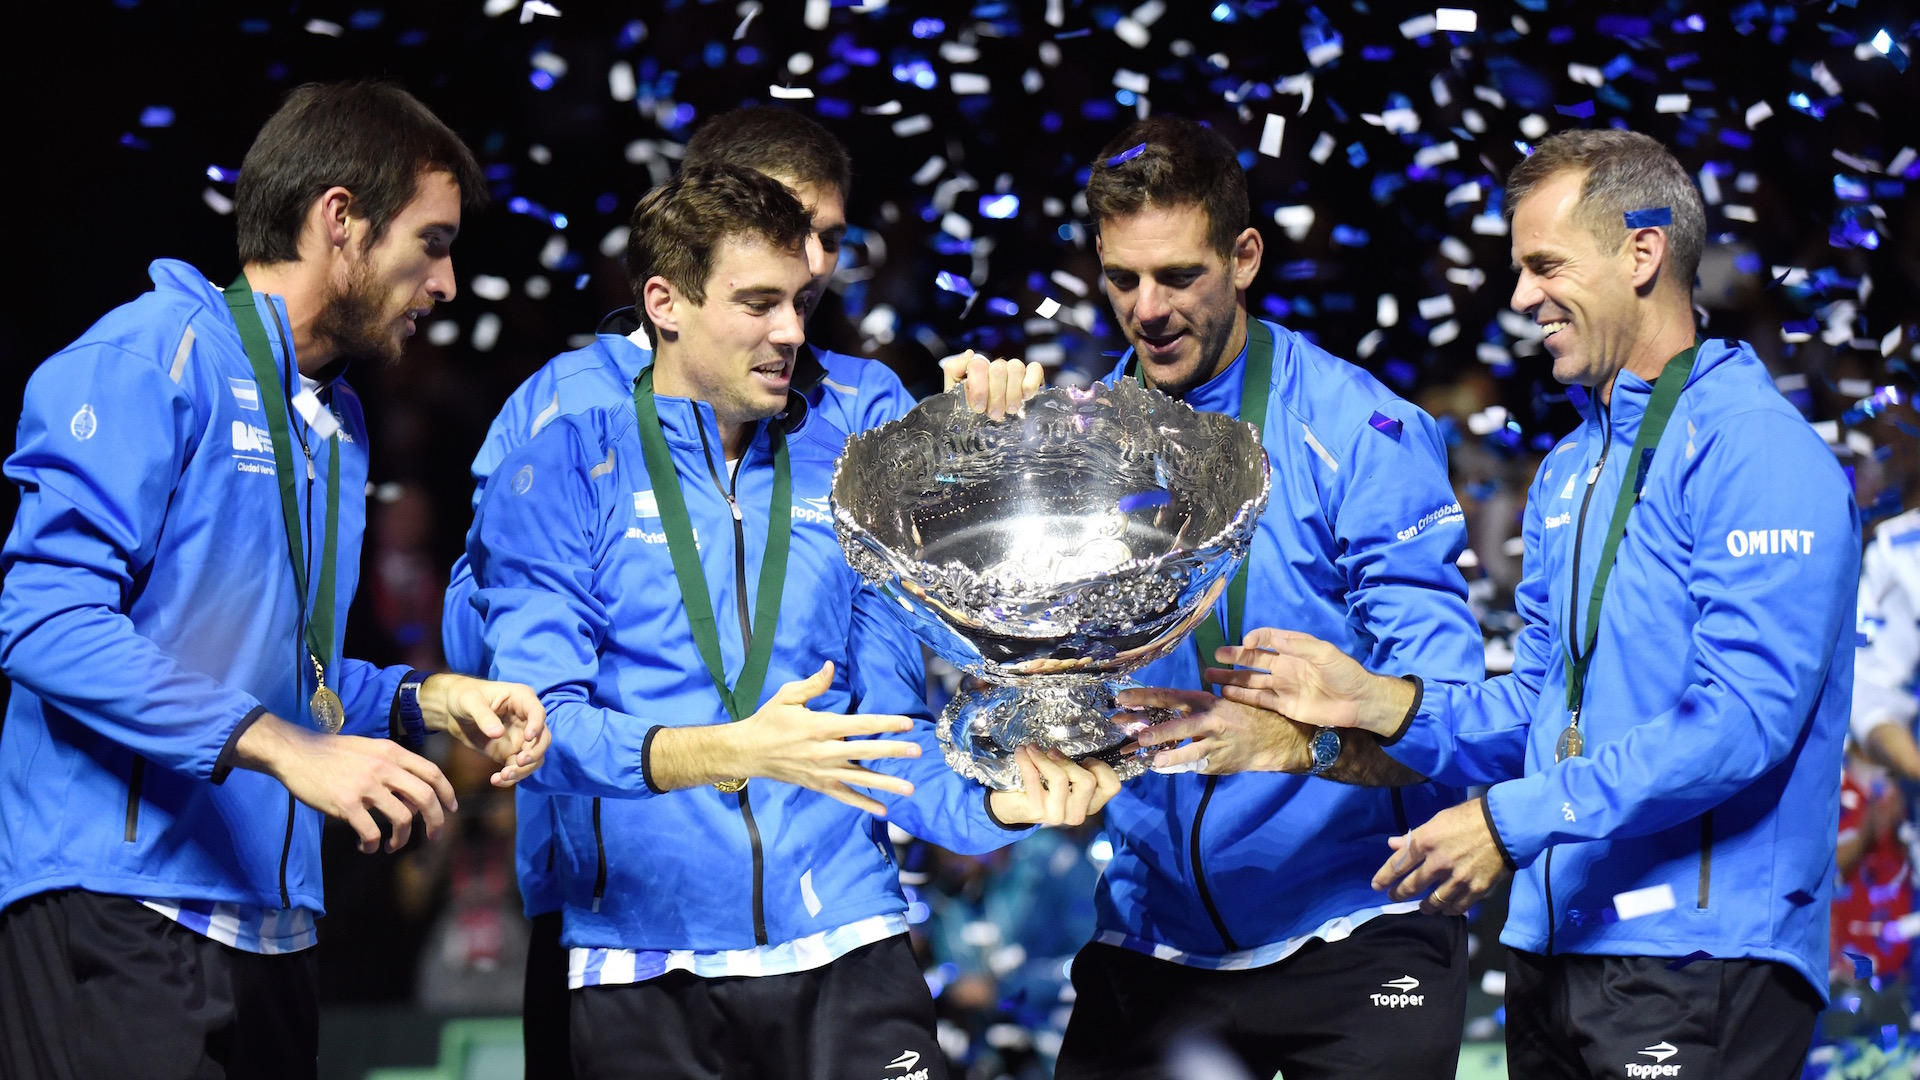 (L-R) Leonardo Mayer, Guido Pella, Federico Delbonis, Juan martin del Potro and coach coach Daniel Orsanic celebrate with the trophy after winning the Davis Cup World Group final between Croatia and Argentina on November 27, 2016 at the Arena hall in Zagreb. / AFP / - (Photo credit should read -/AFP/Getty Images)